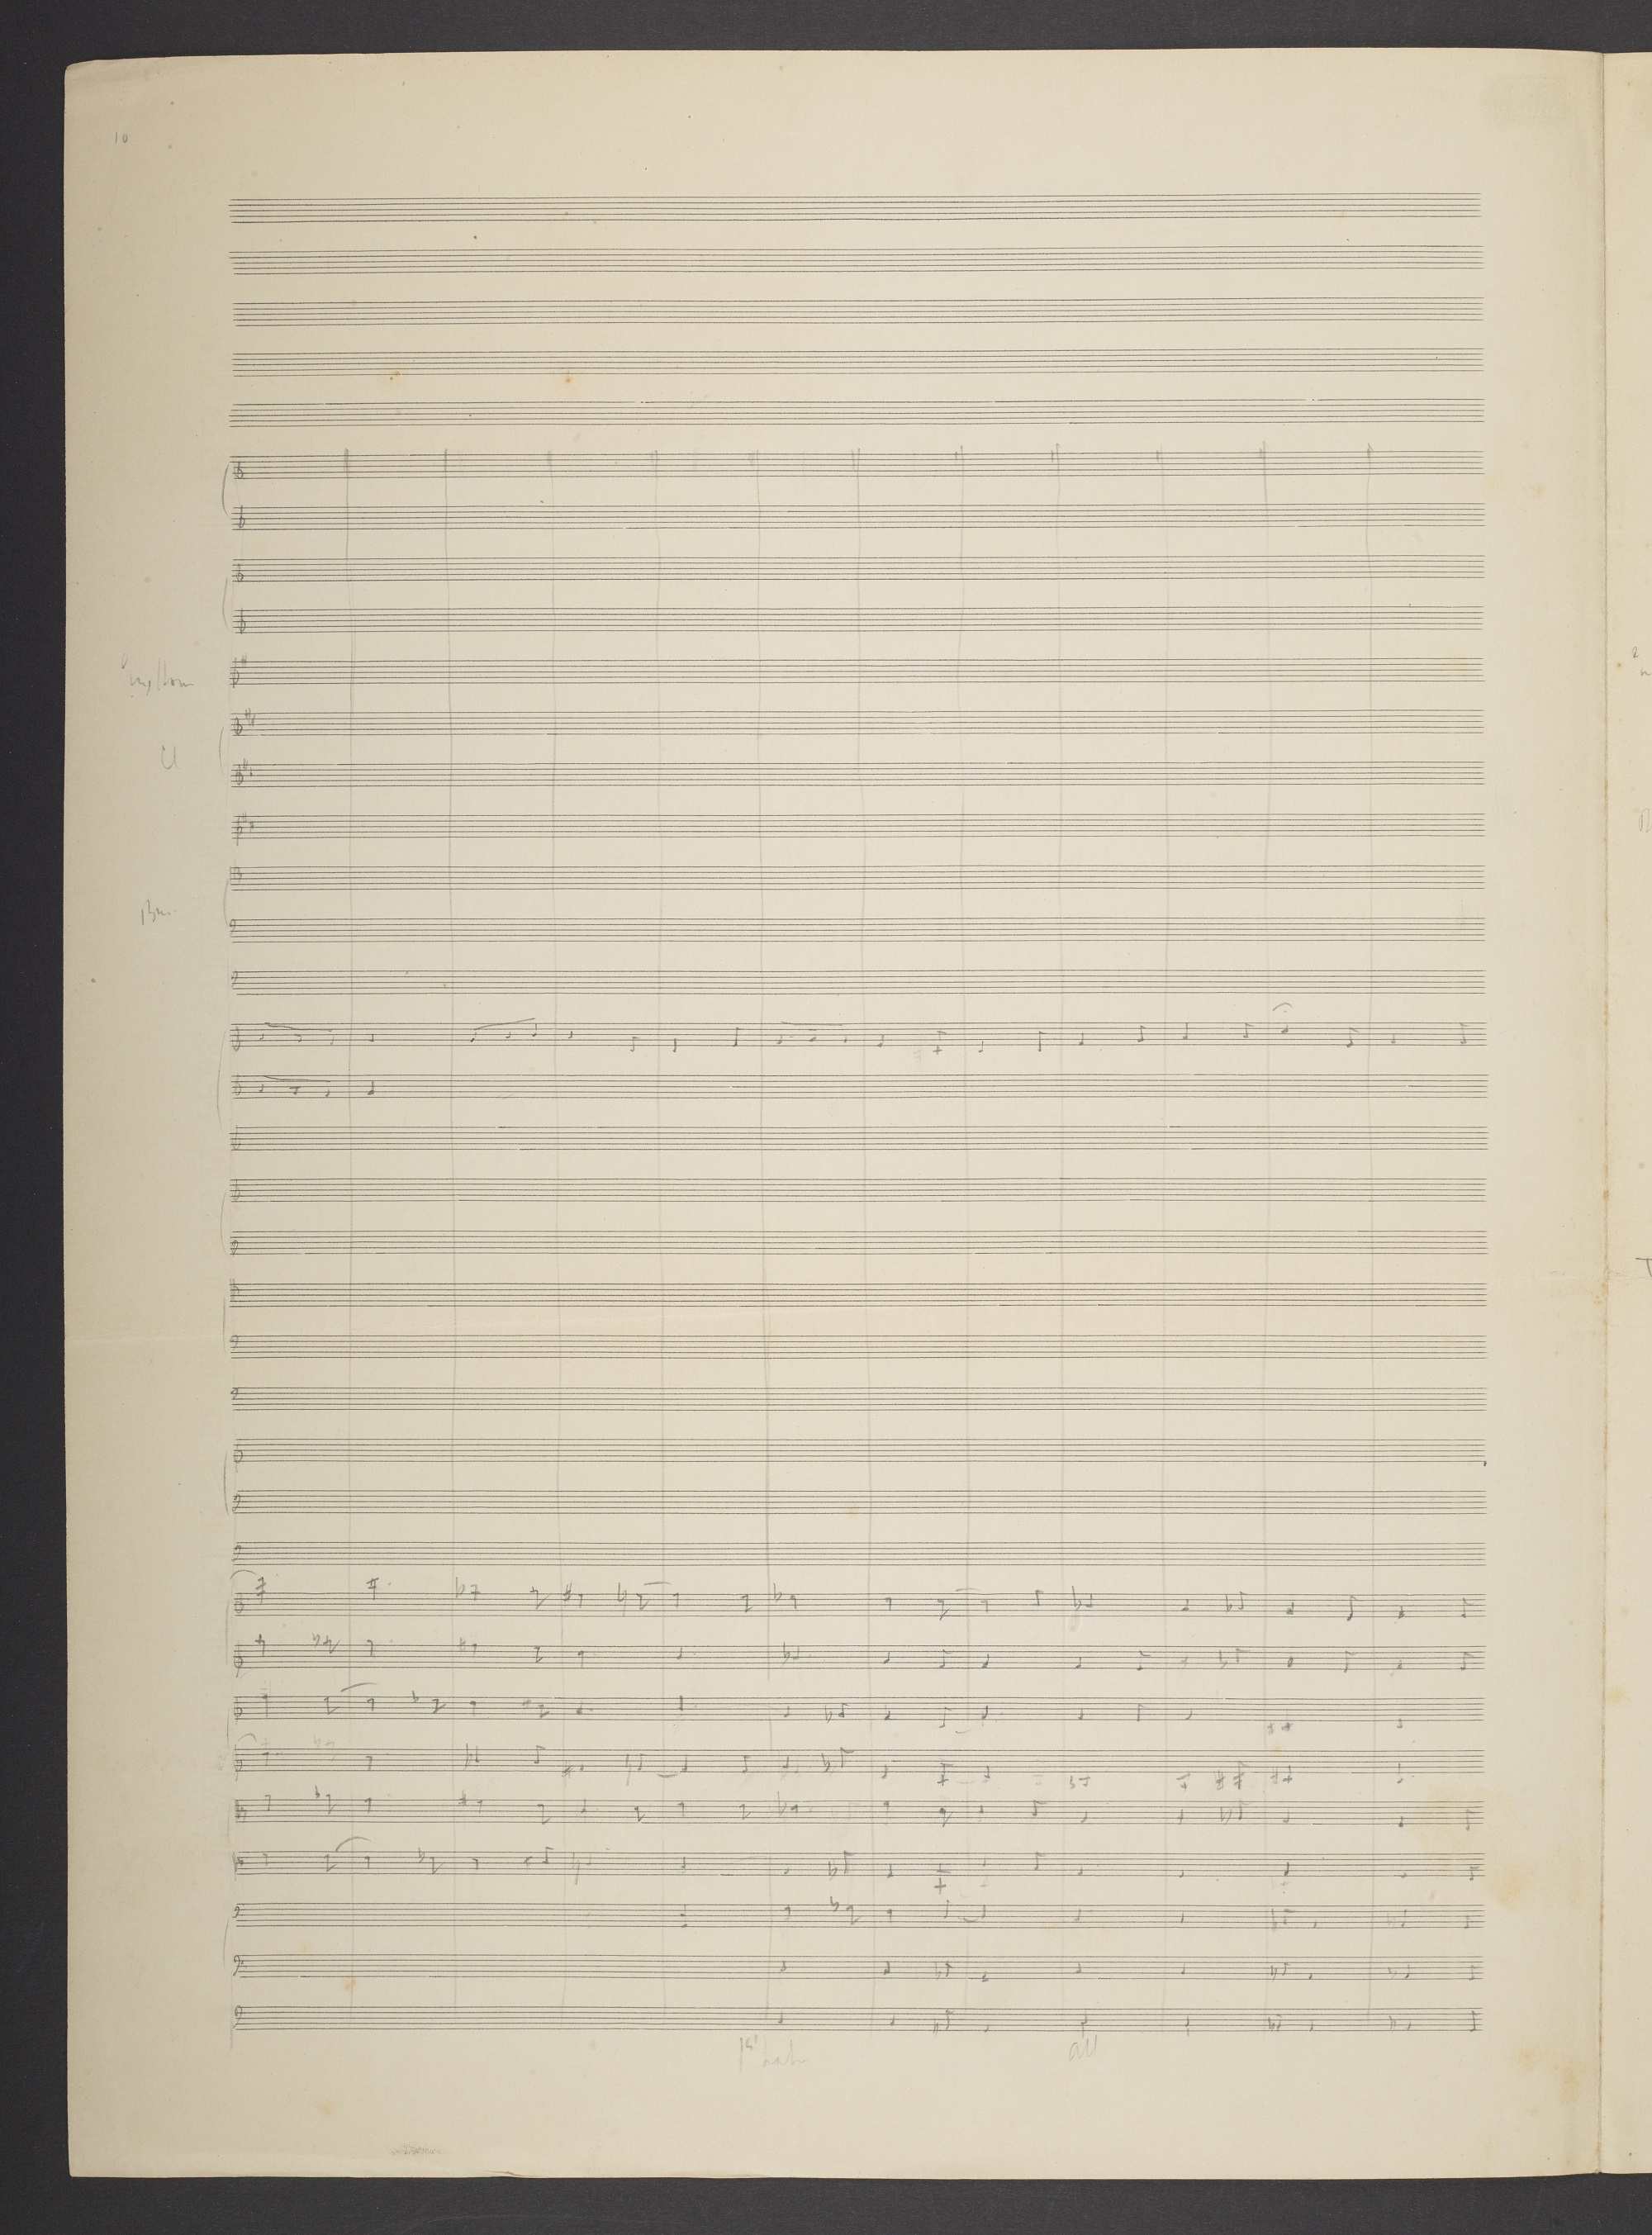 Early pencil score of Frederick Delius, Brigg Fair, f. 117v